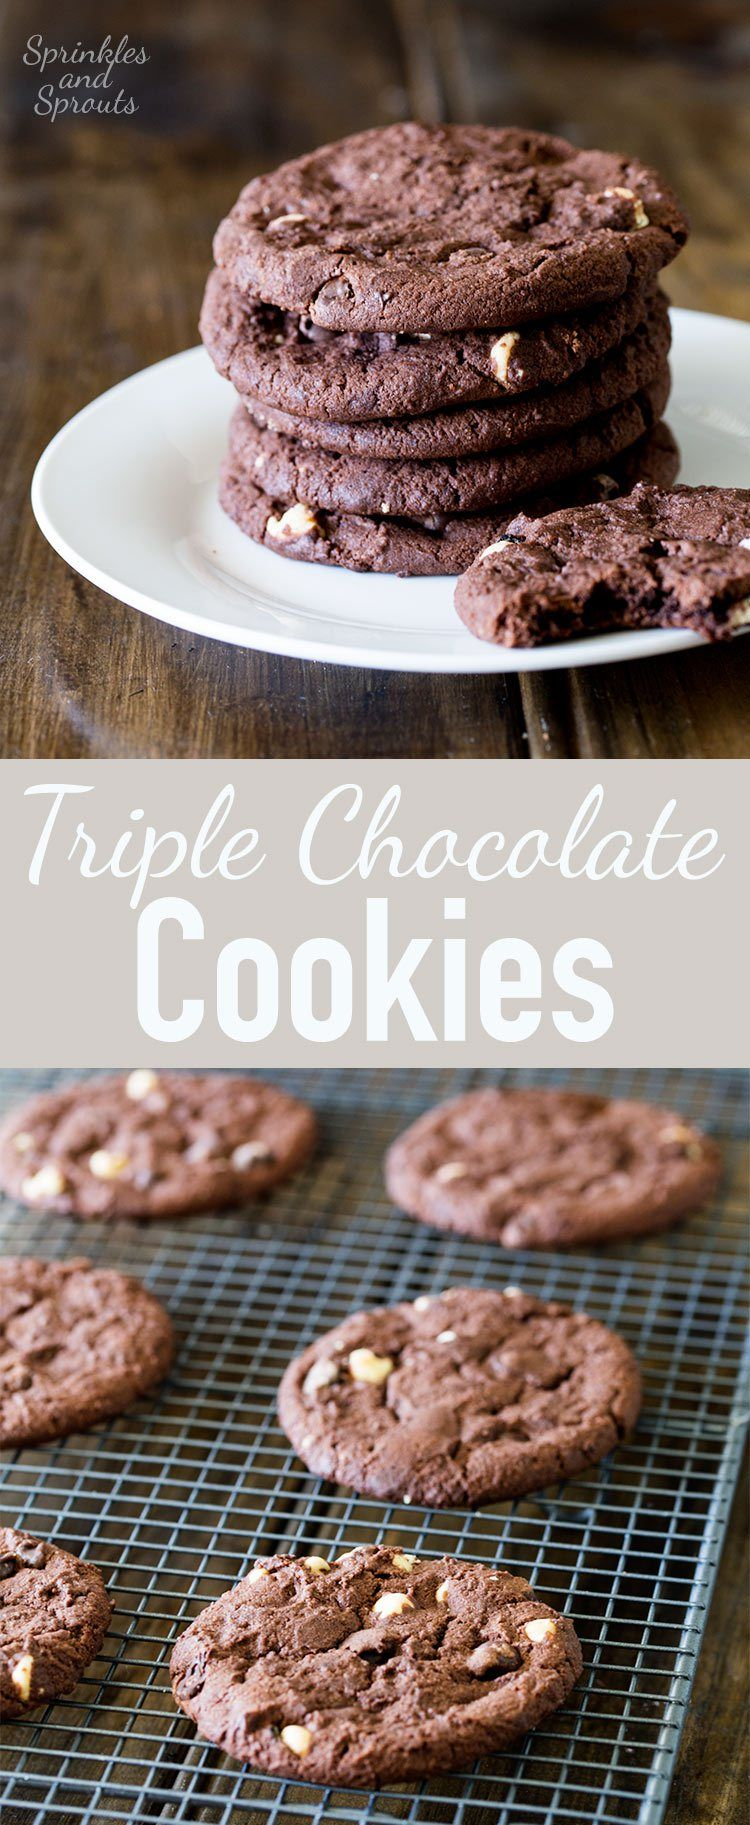 These subway style chocolate chip cookies are super chocolaty, super rich, super delicious and just super wonderful. They are beautifully soft, with a slight crisp edge, gooey in the middle and total worth every calorie!!! #chocolatechipcookies